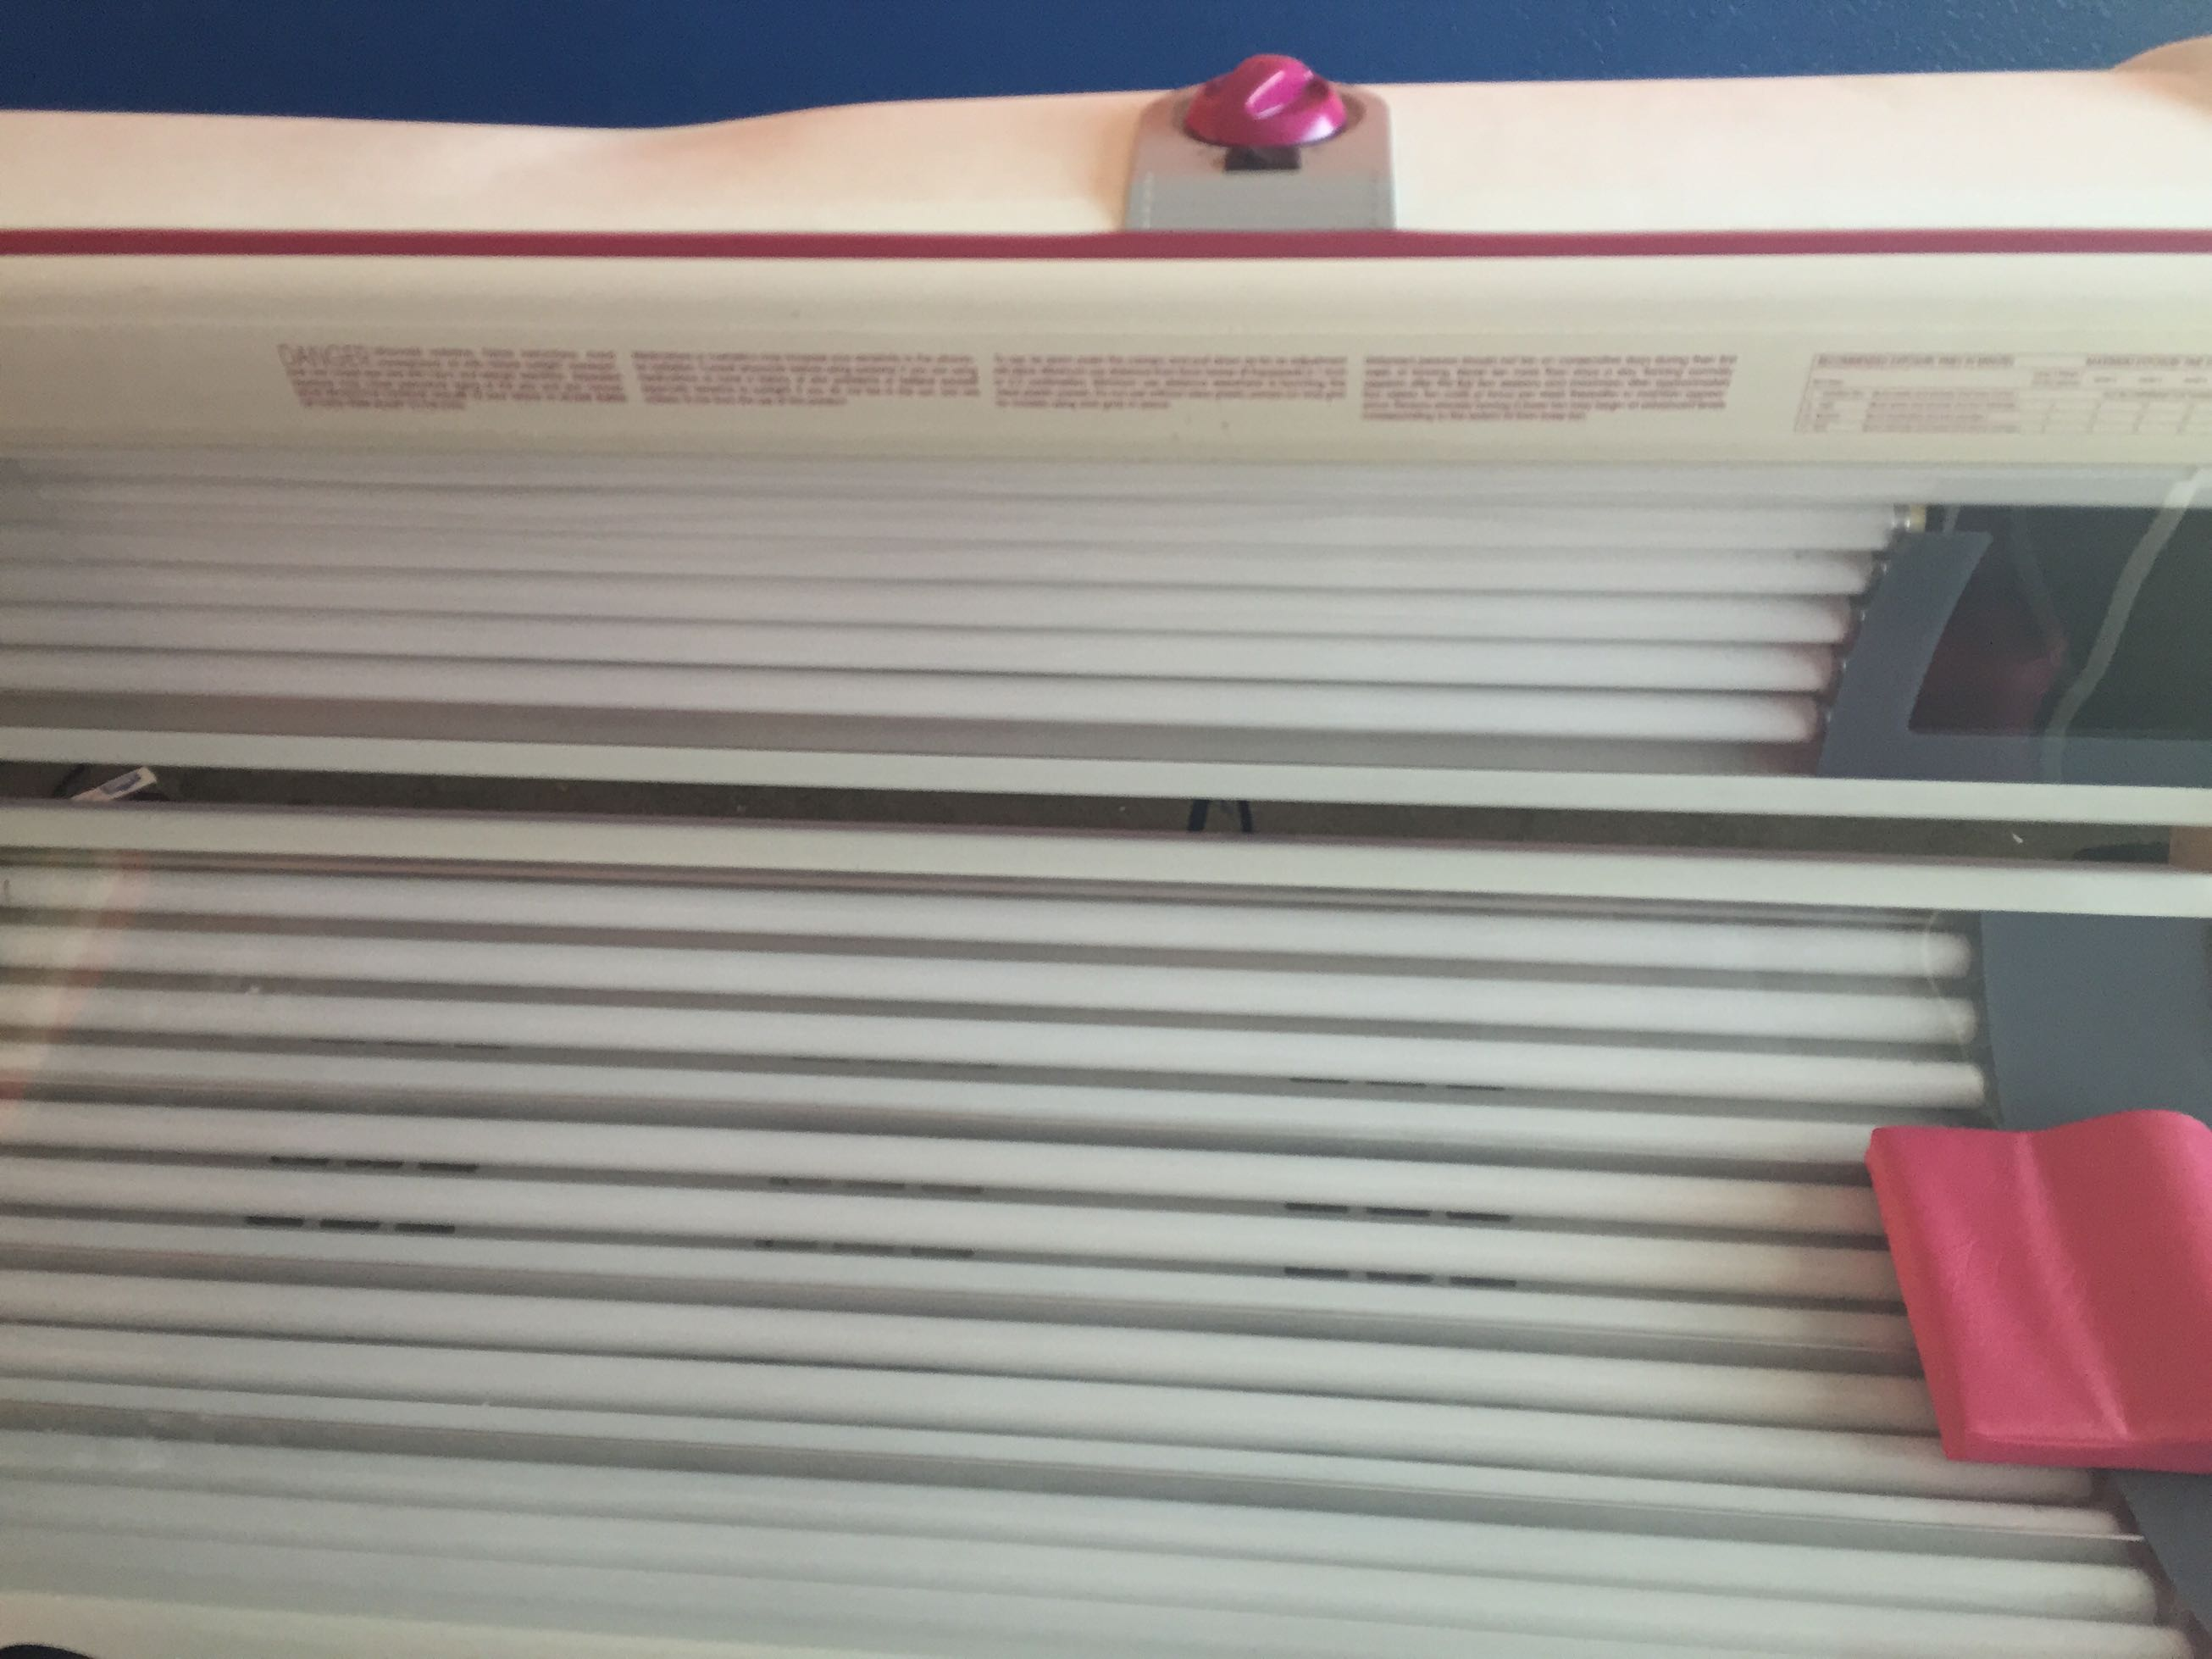 Sunvision Lx Tanning Bed For Sale